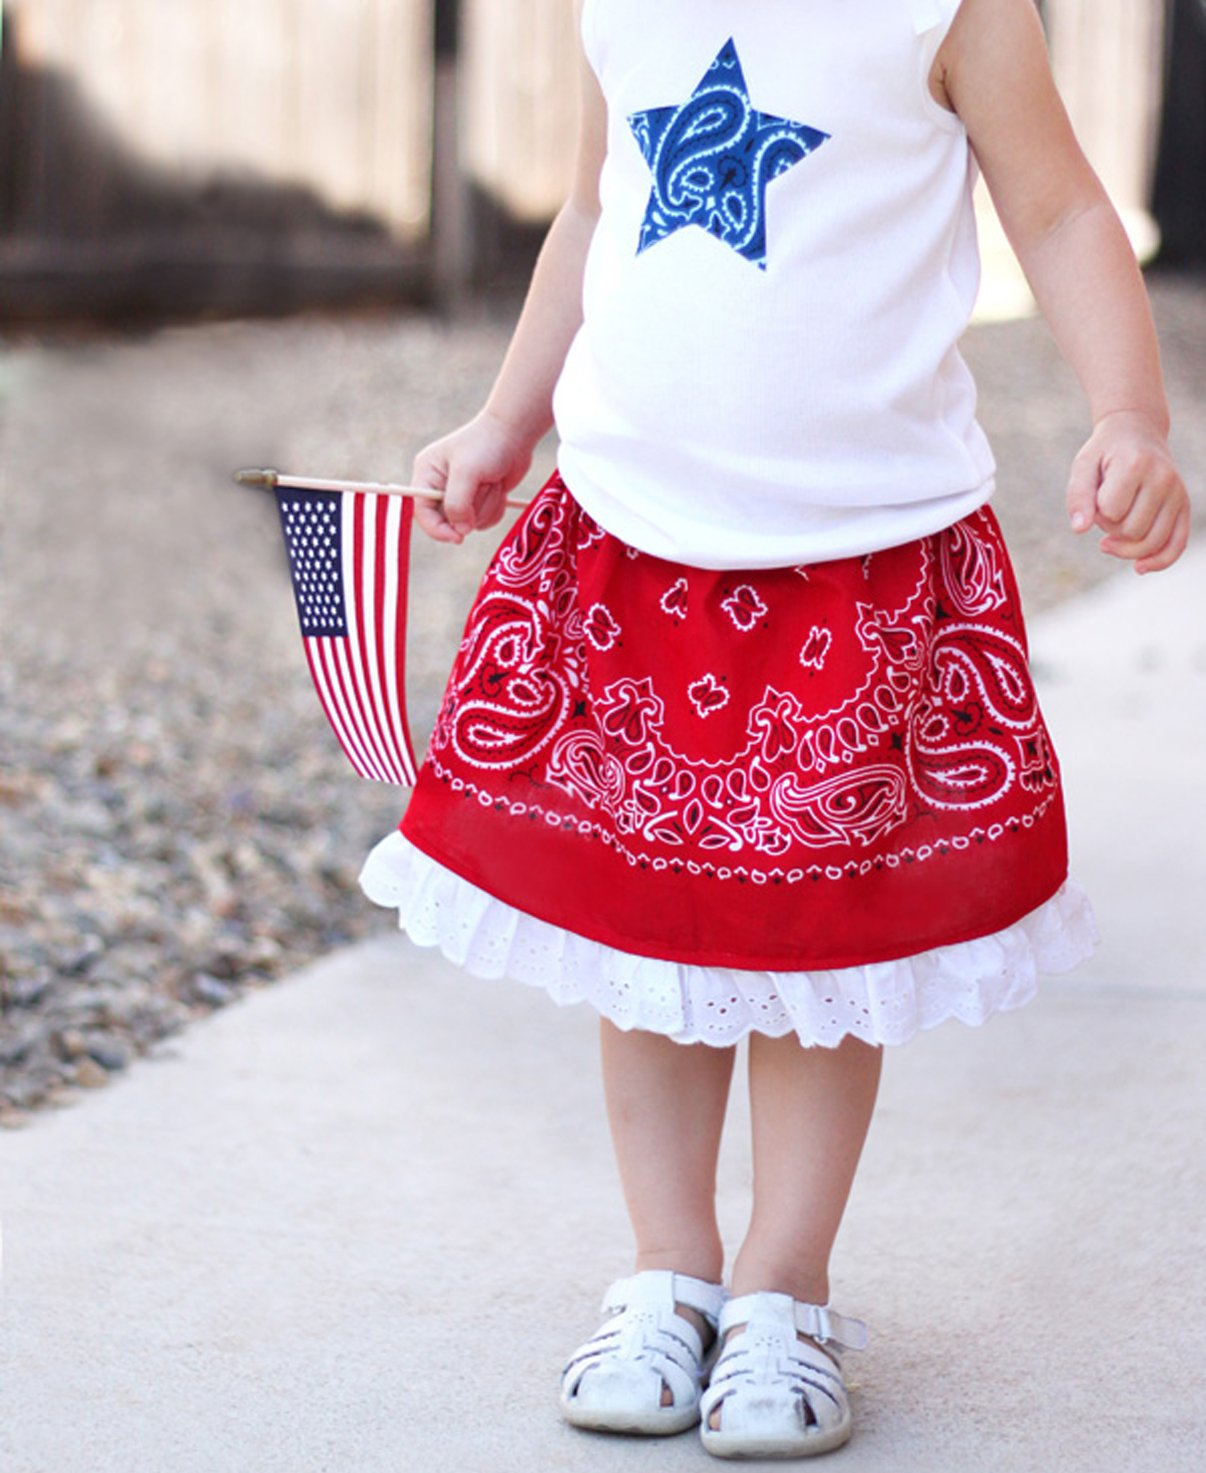 Bandana 3-Pack - Made in USA For 70 Years - Sold by Vets – 100% Cotton –Sewn Edges by OHSAY USA (Image #9)